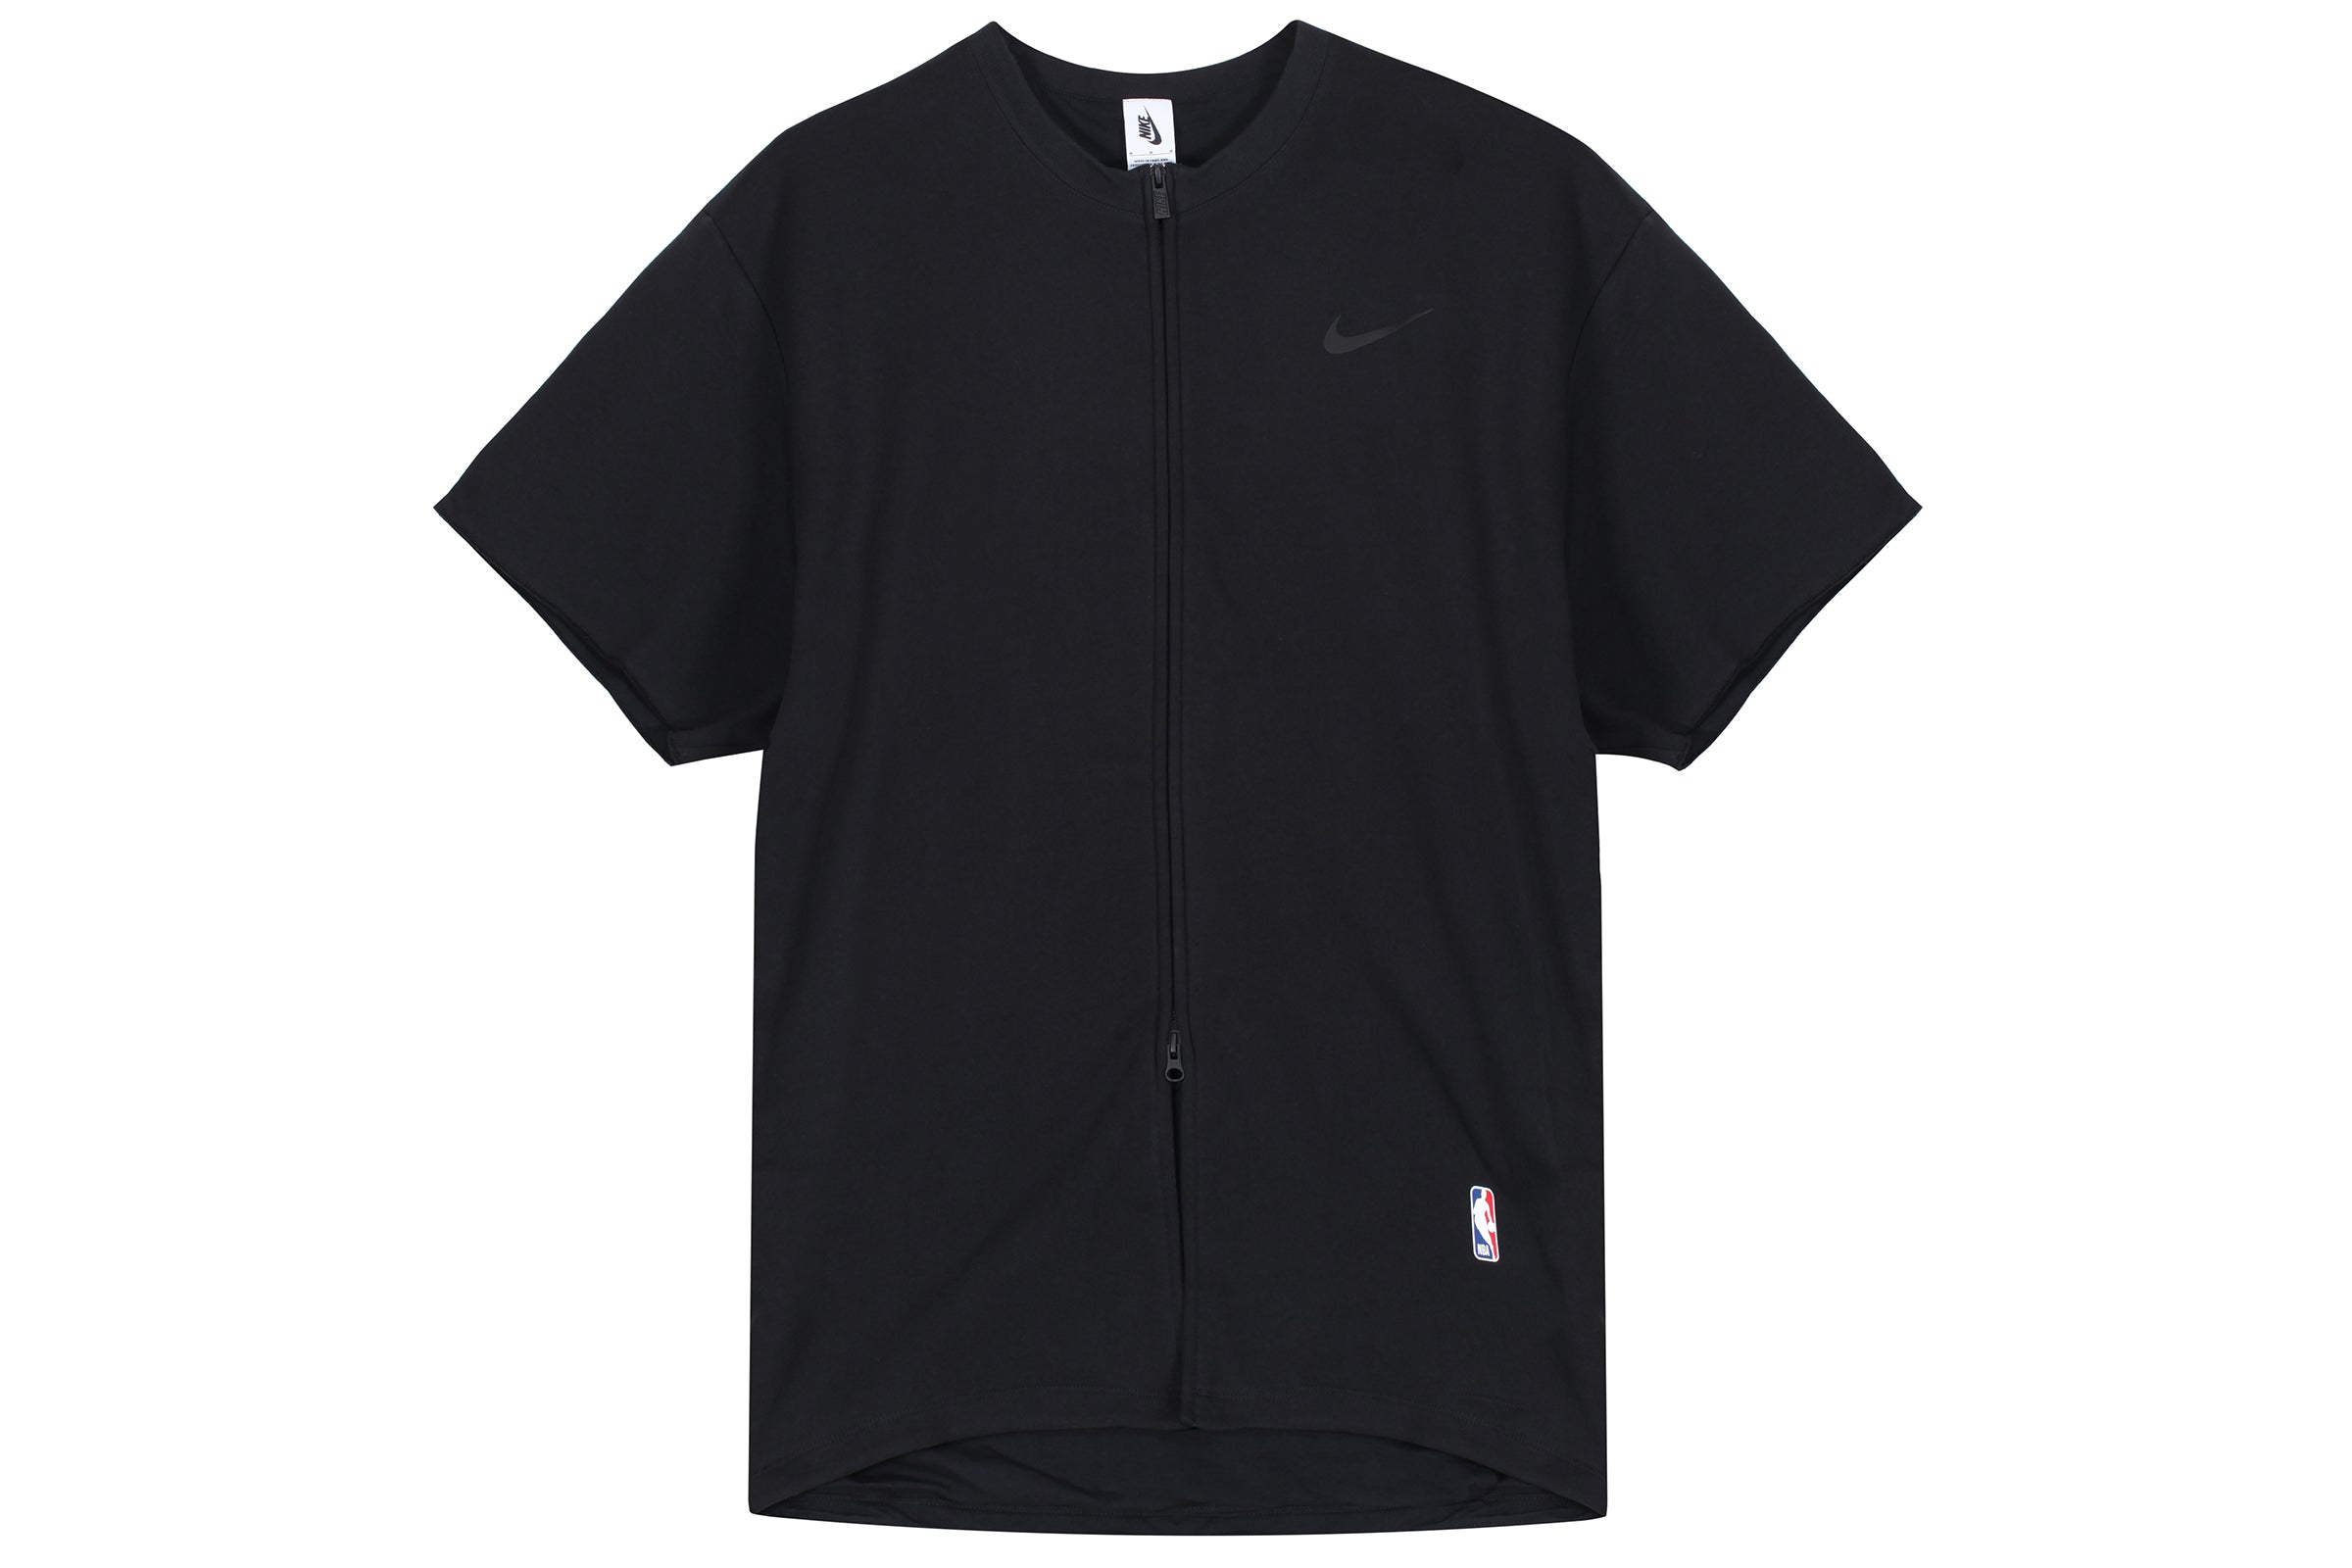 Nike NRG Warm-Up Top x Fear Of God